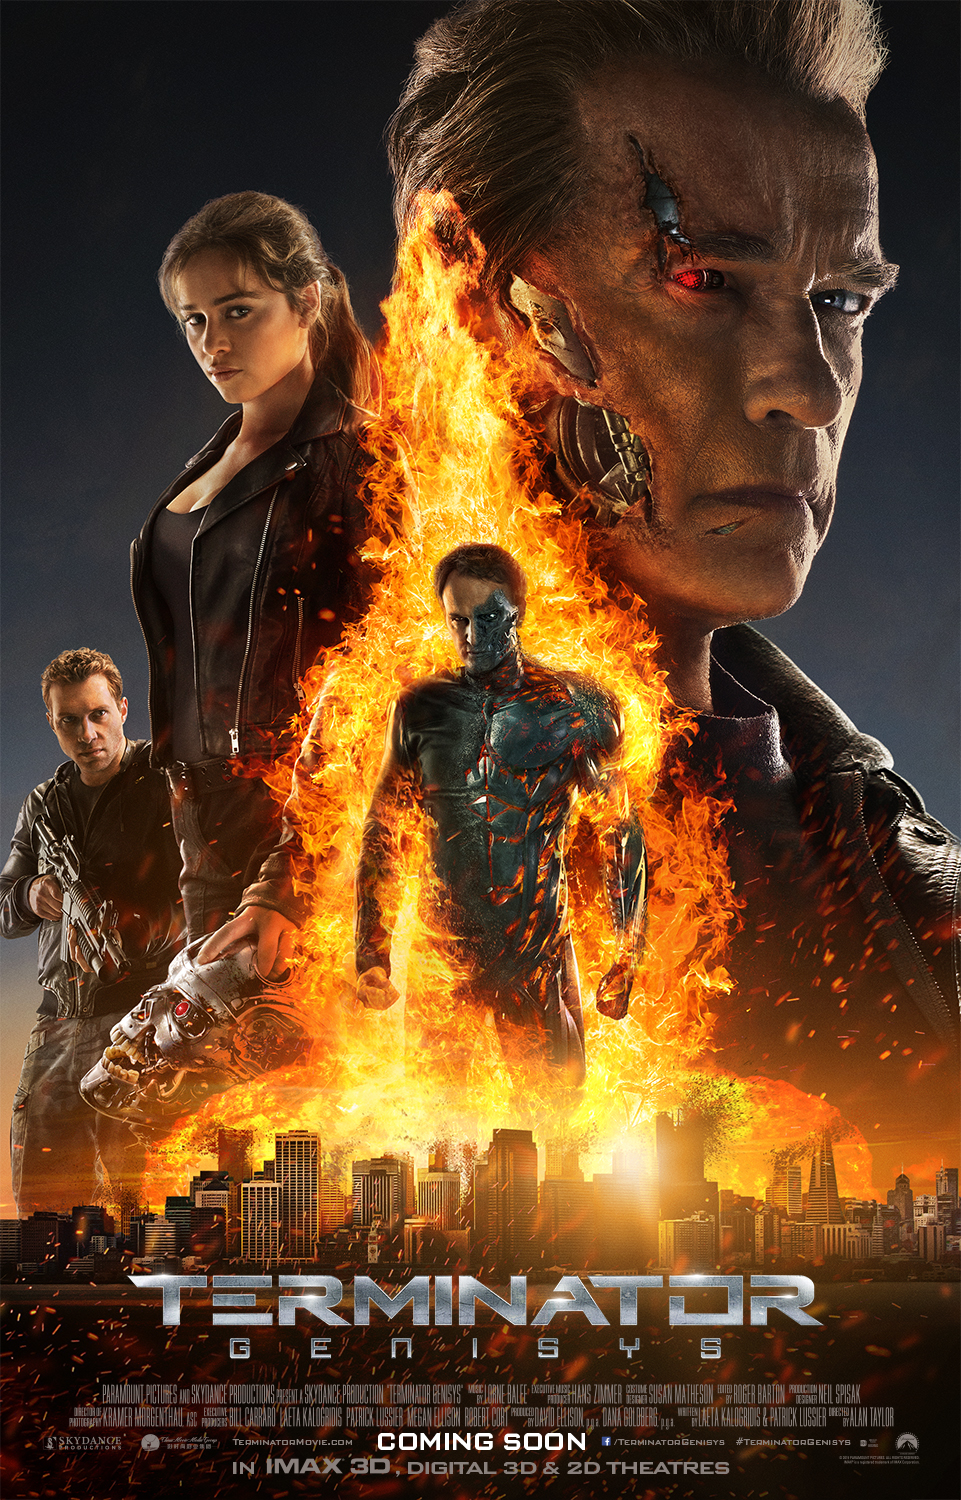 Datei:Terminator-Genisys Payoff IMAX Poster.jpg